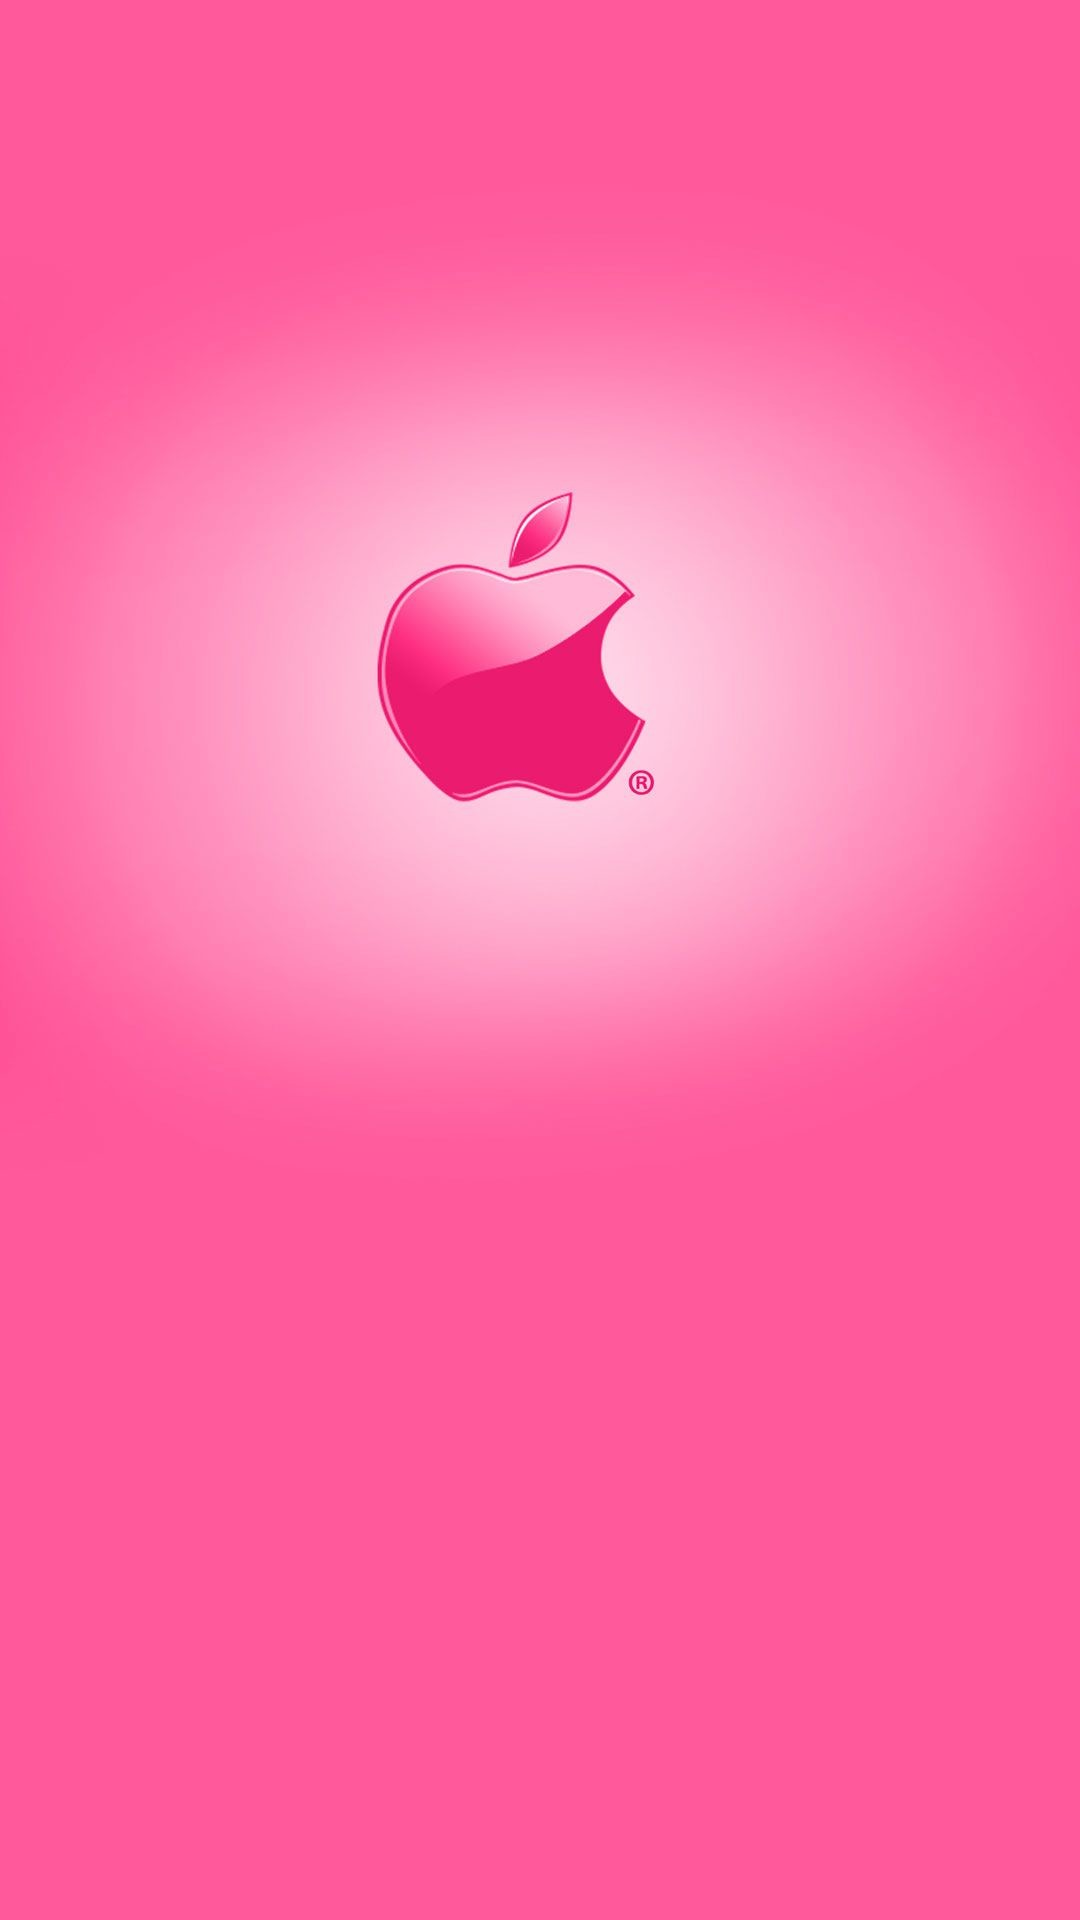 1080x1920 Apple iPhone Pink Cute Wallpapers For Girls